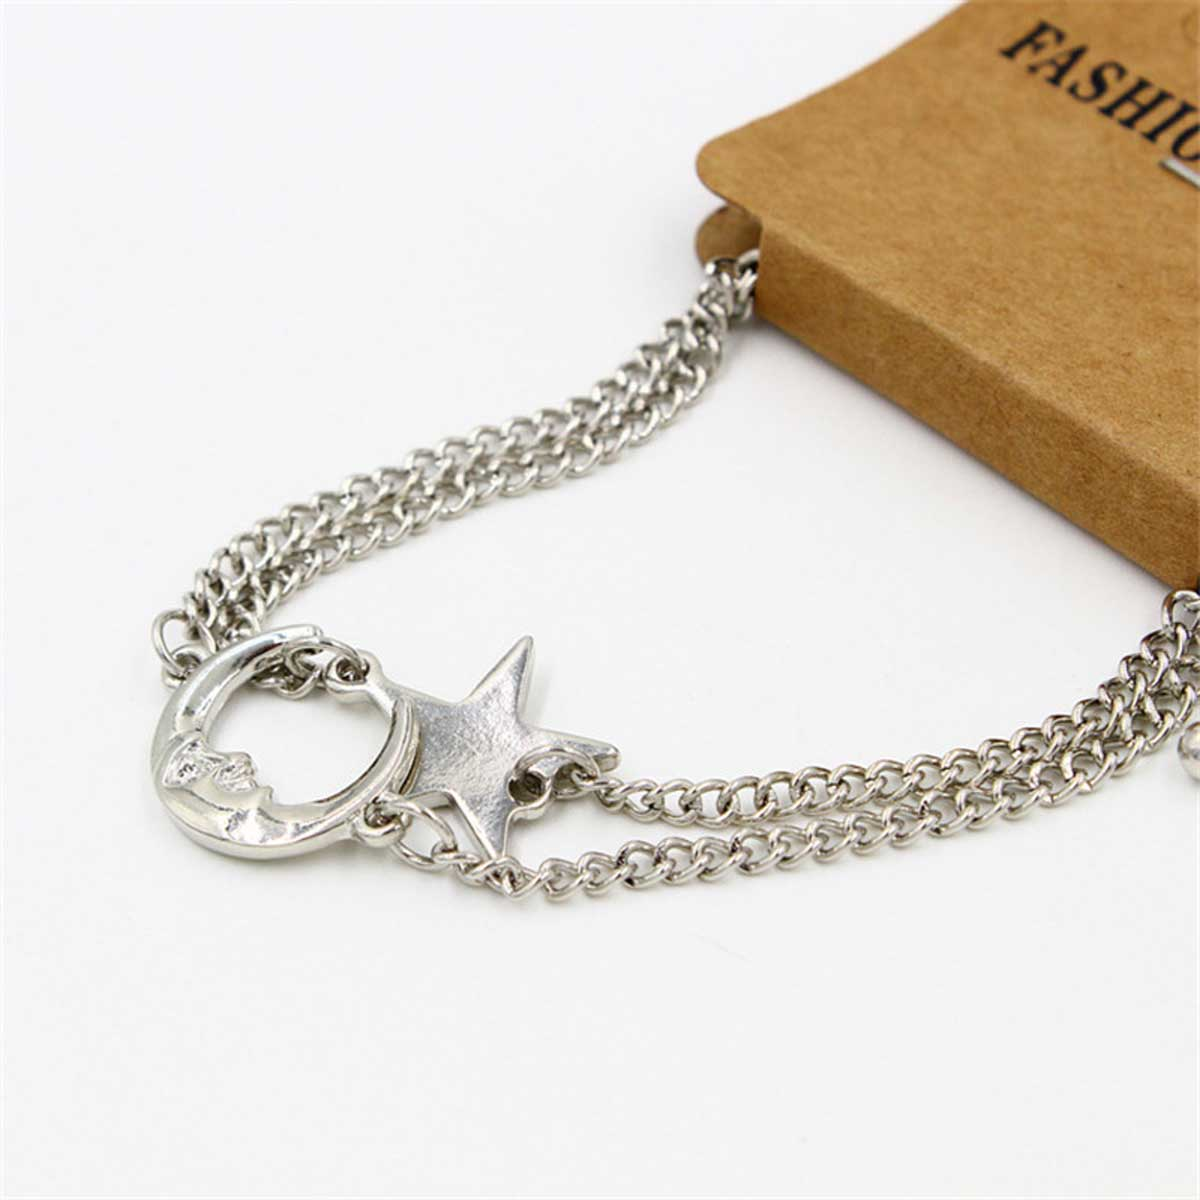 Silvery Moon and Star Romantic Couples Bracelet 2 Pcs Set - GearBody